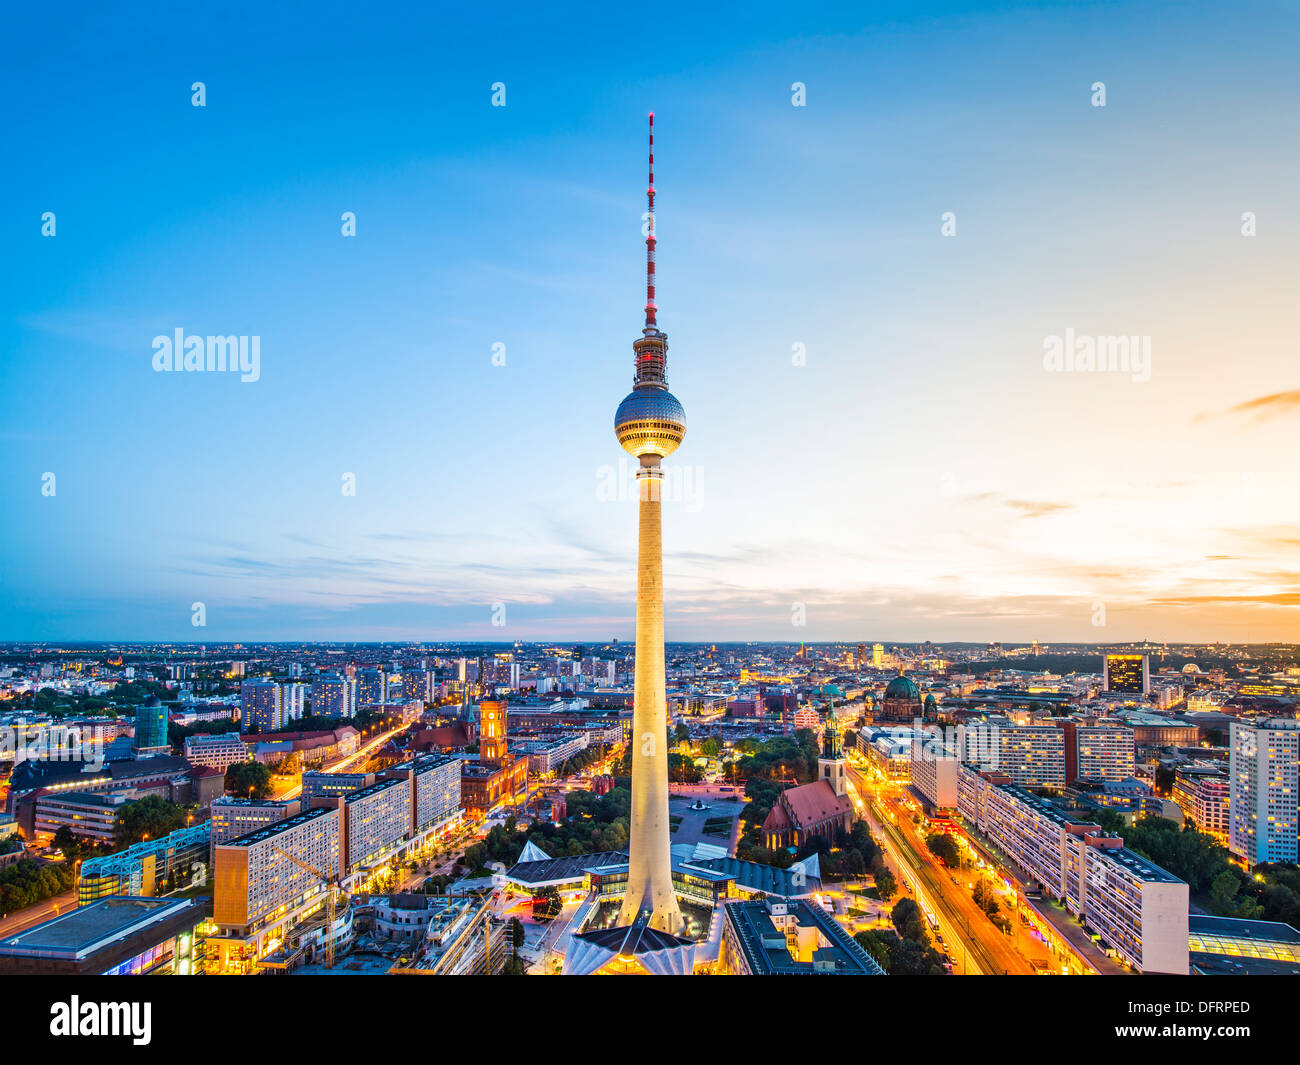 Berlin, Germany viewed from above the Spree River. Stock Photo